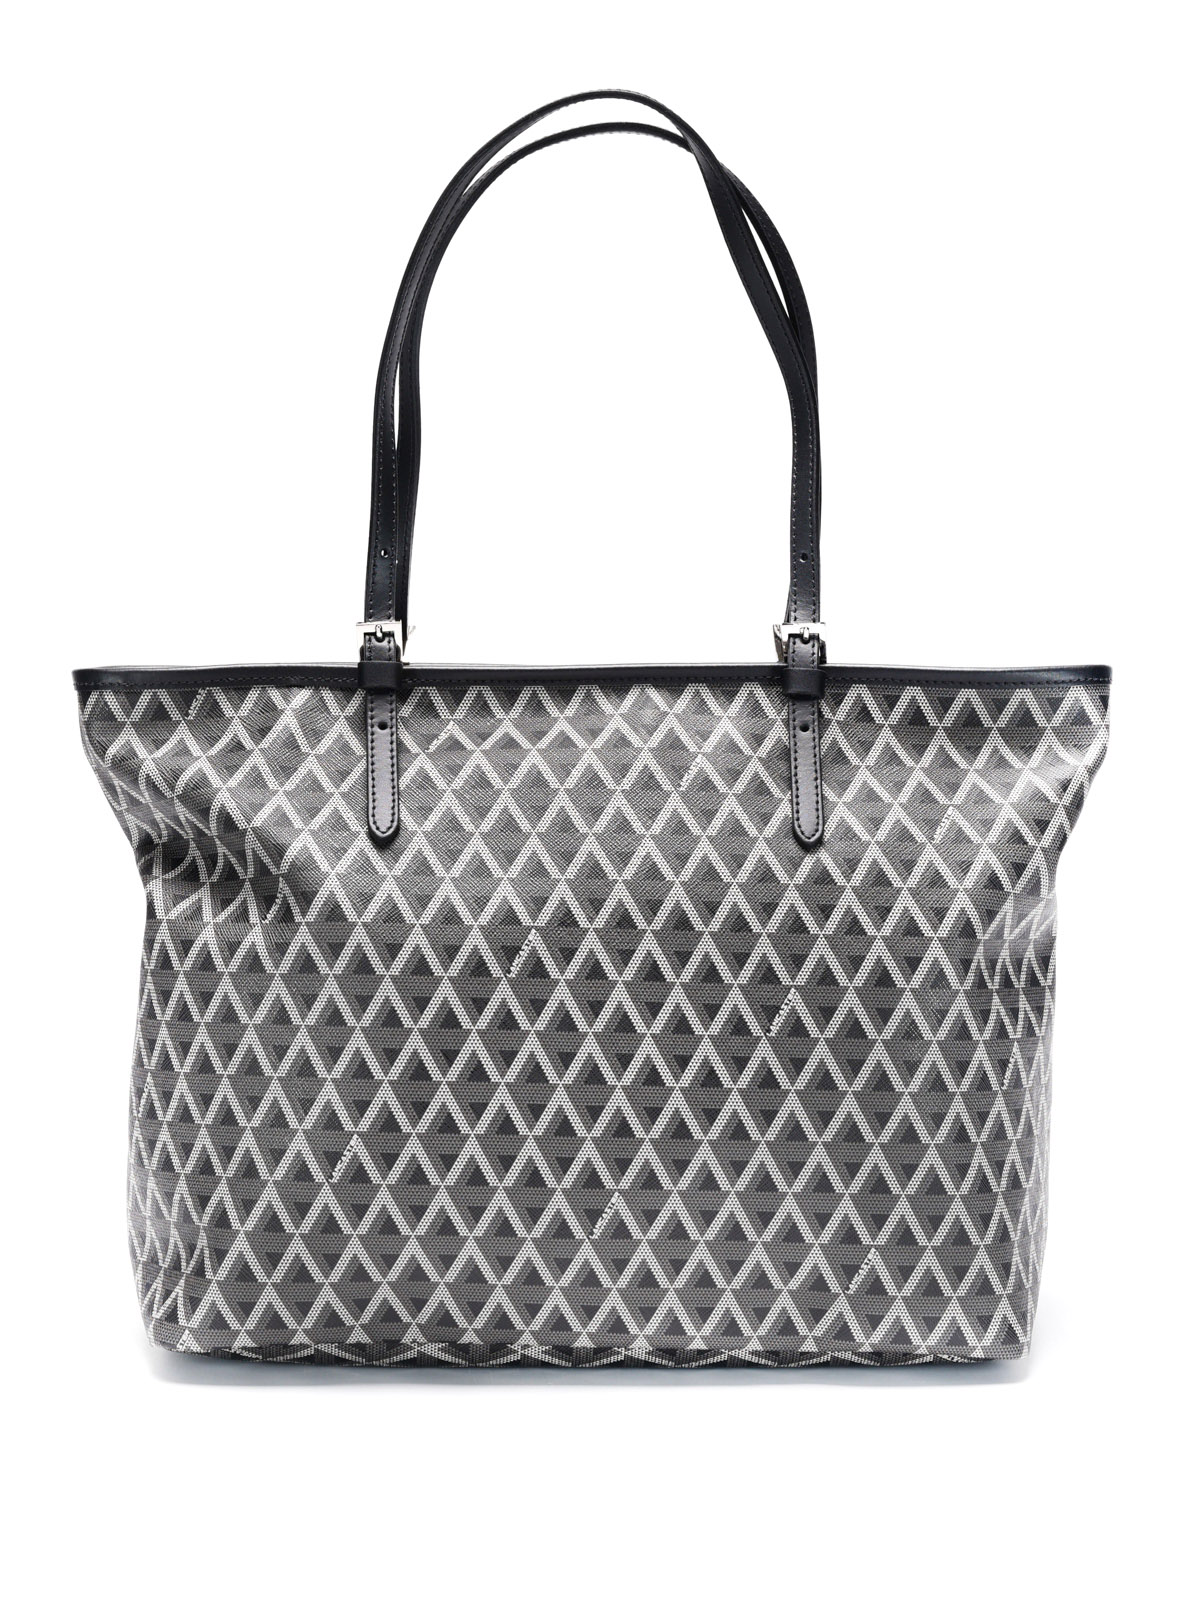 geometric pattern tote by lancaster totes bags ikrix. Black Bedroom Furniture Sets. Home Design Ideas